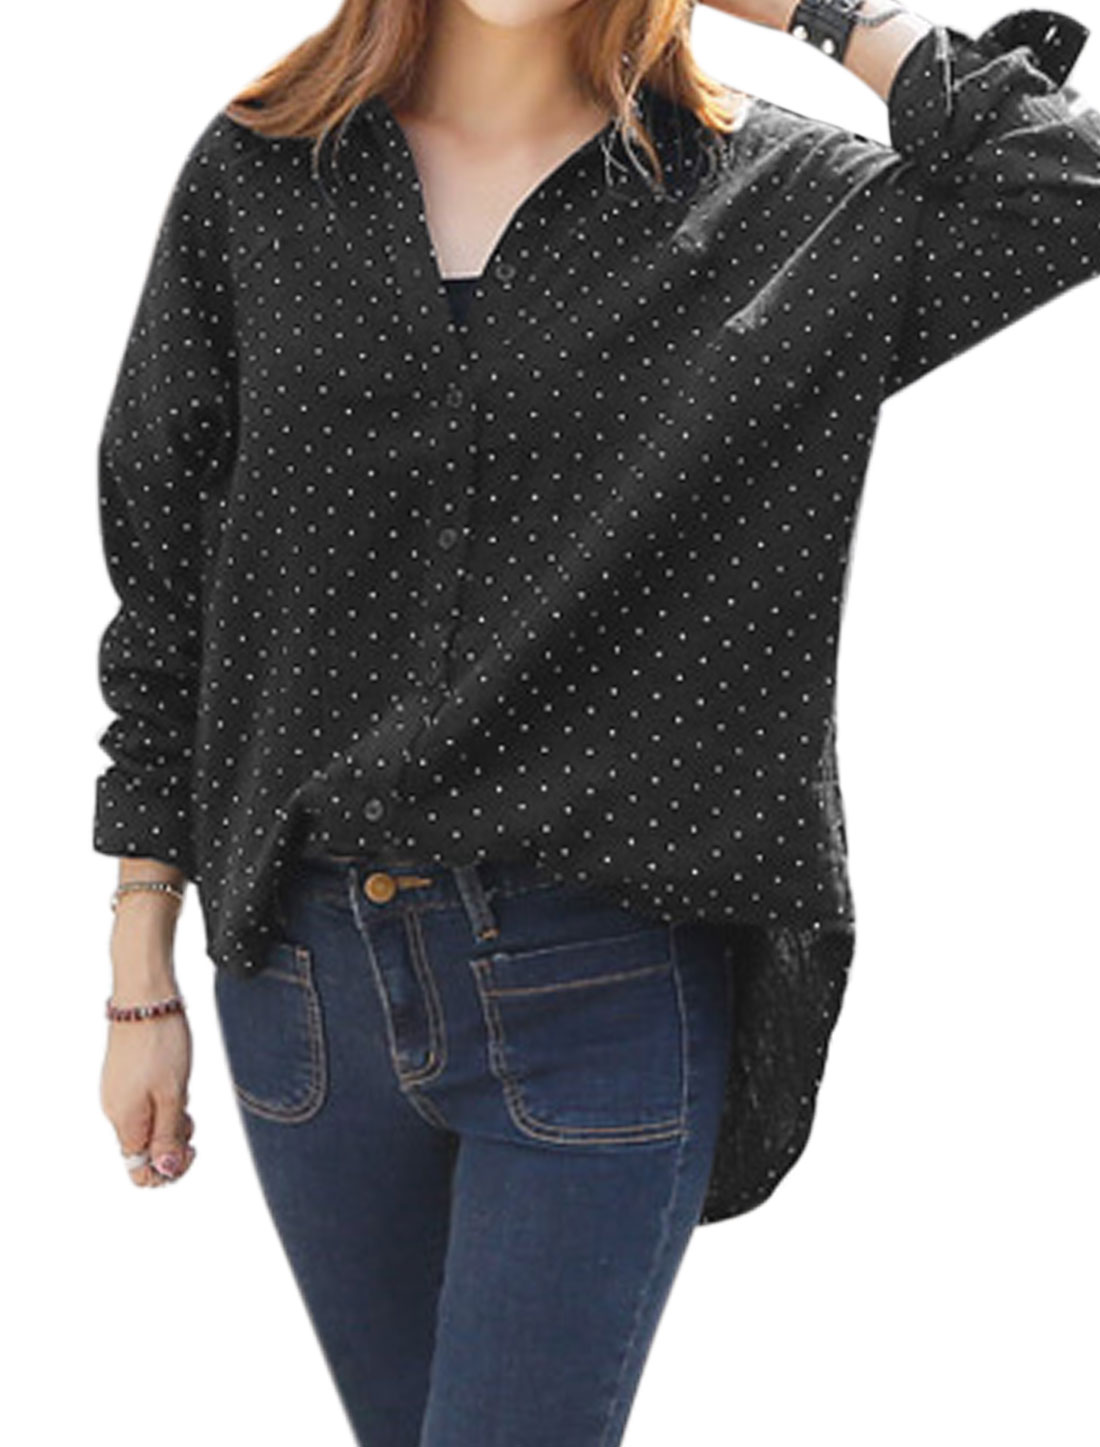 Women Point Collar Long Sleeves Dots Loose Tunic Shirt Black XS